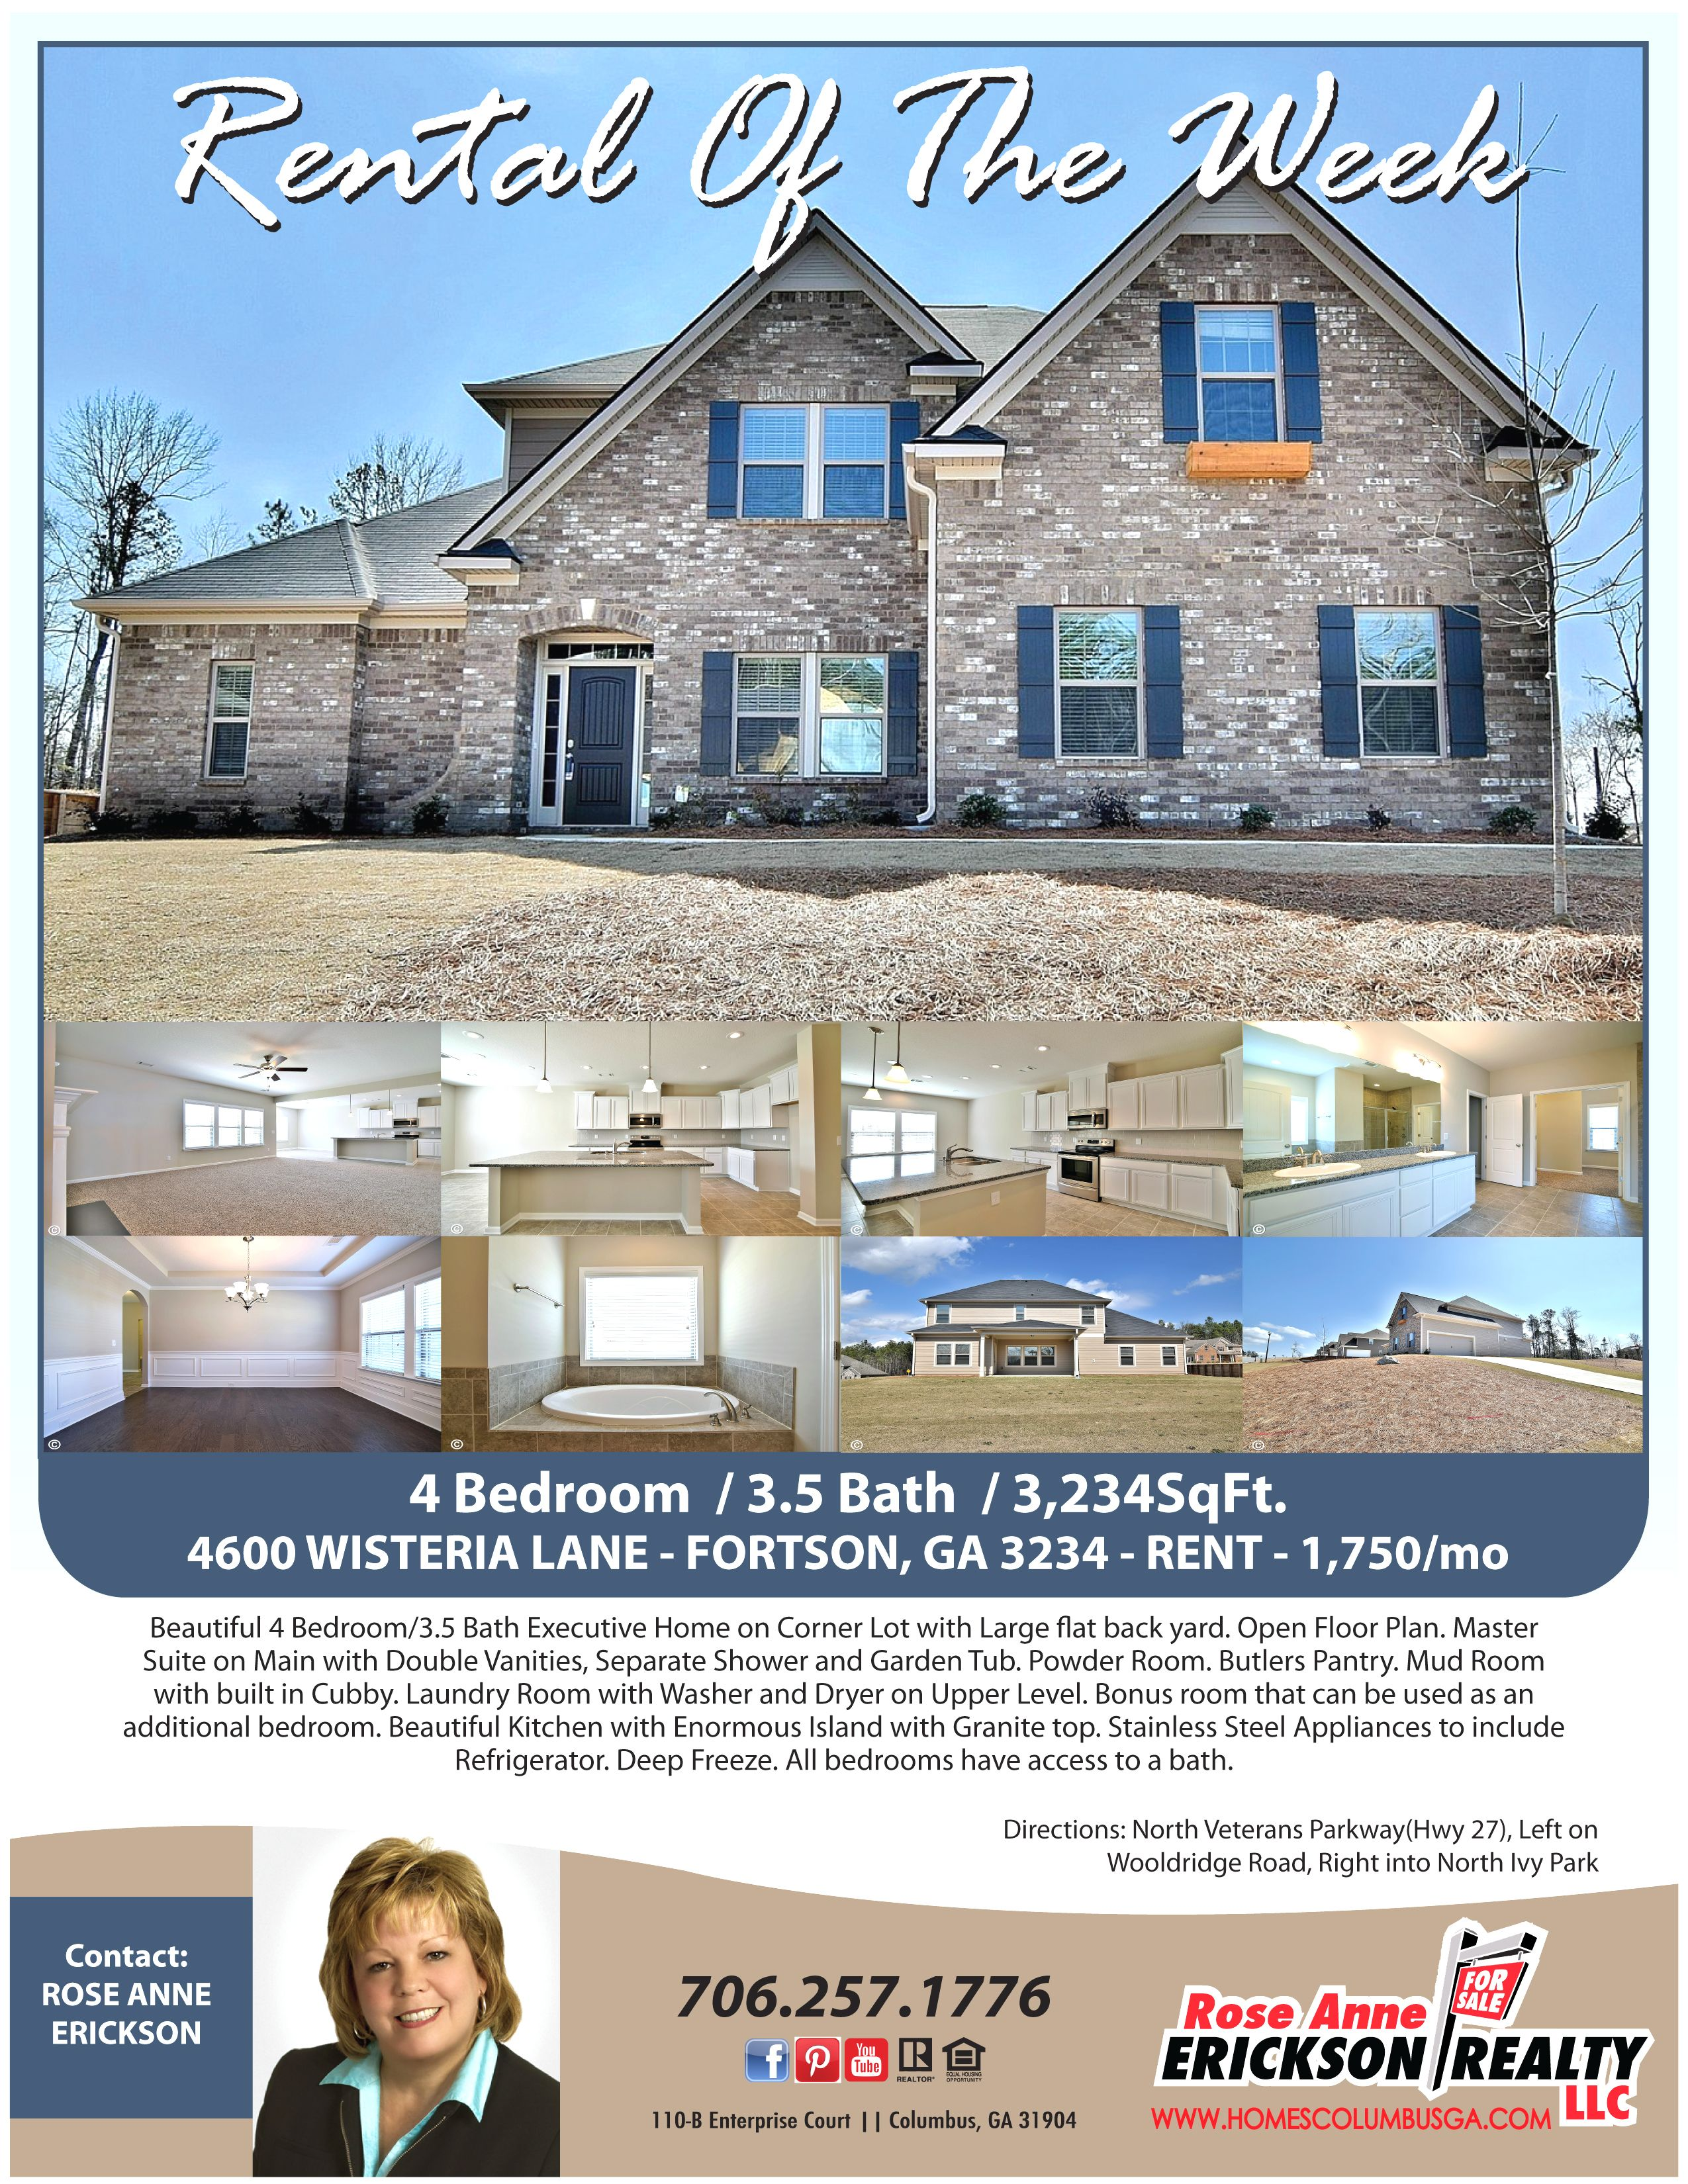 Look At This Amazing Rental In Fortson Ga 4br 3 5ba Like New And Energy Star Certified Beautiful Bedrooms Master Room Executive Suites